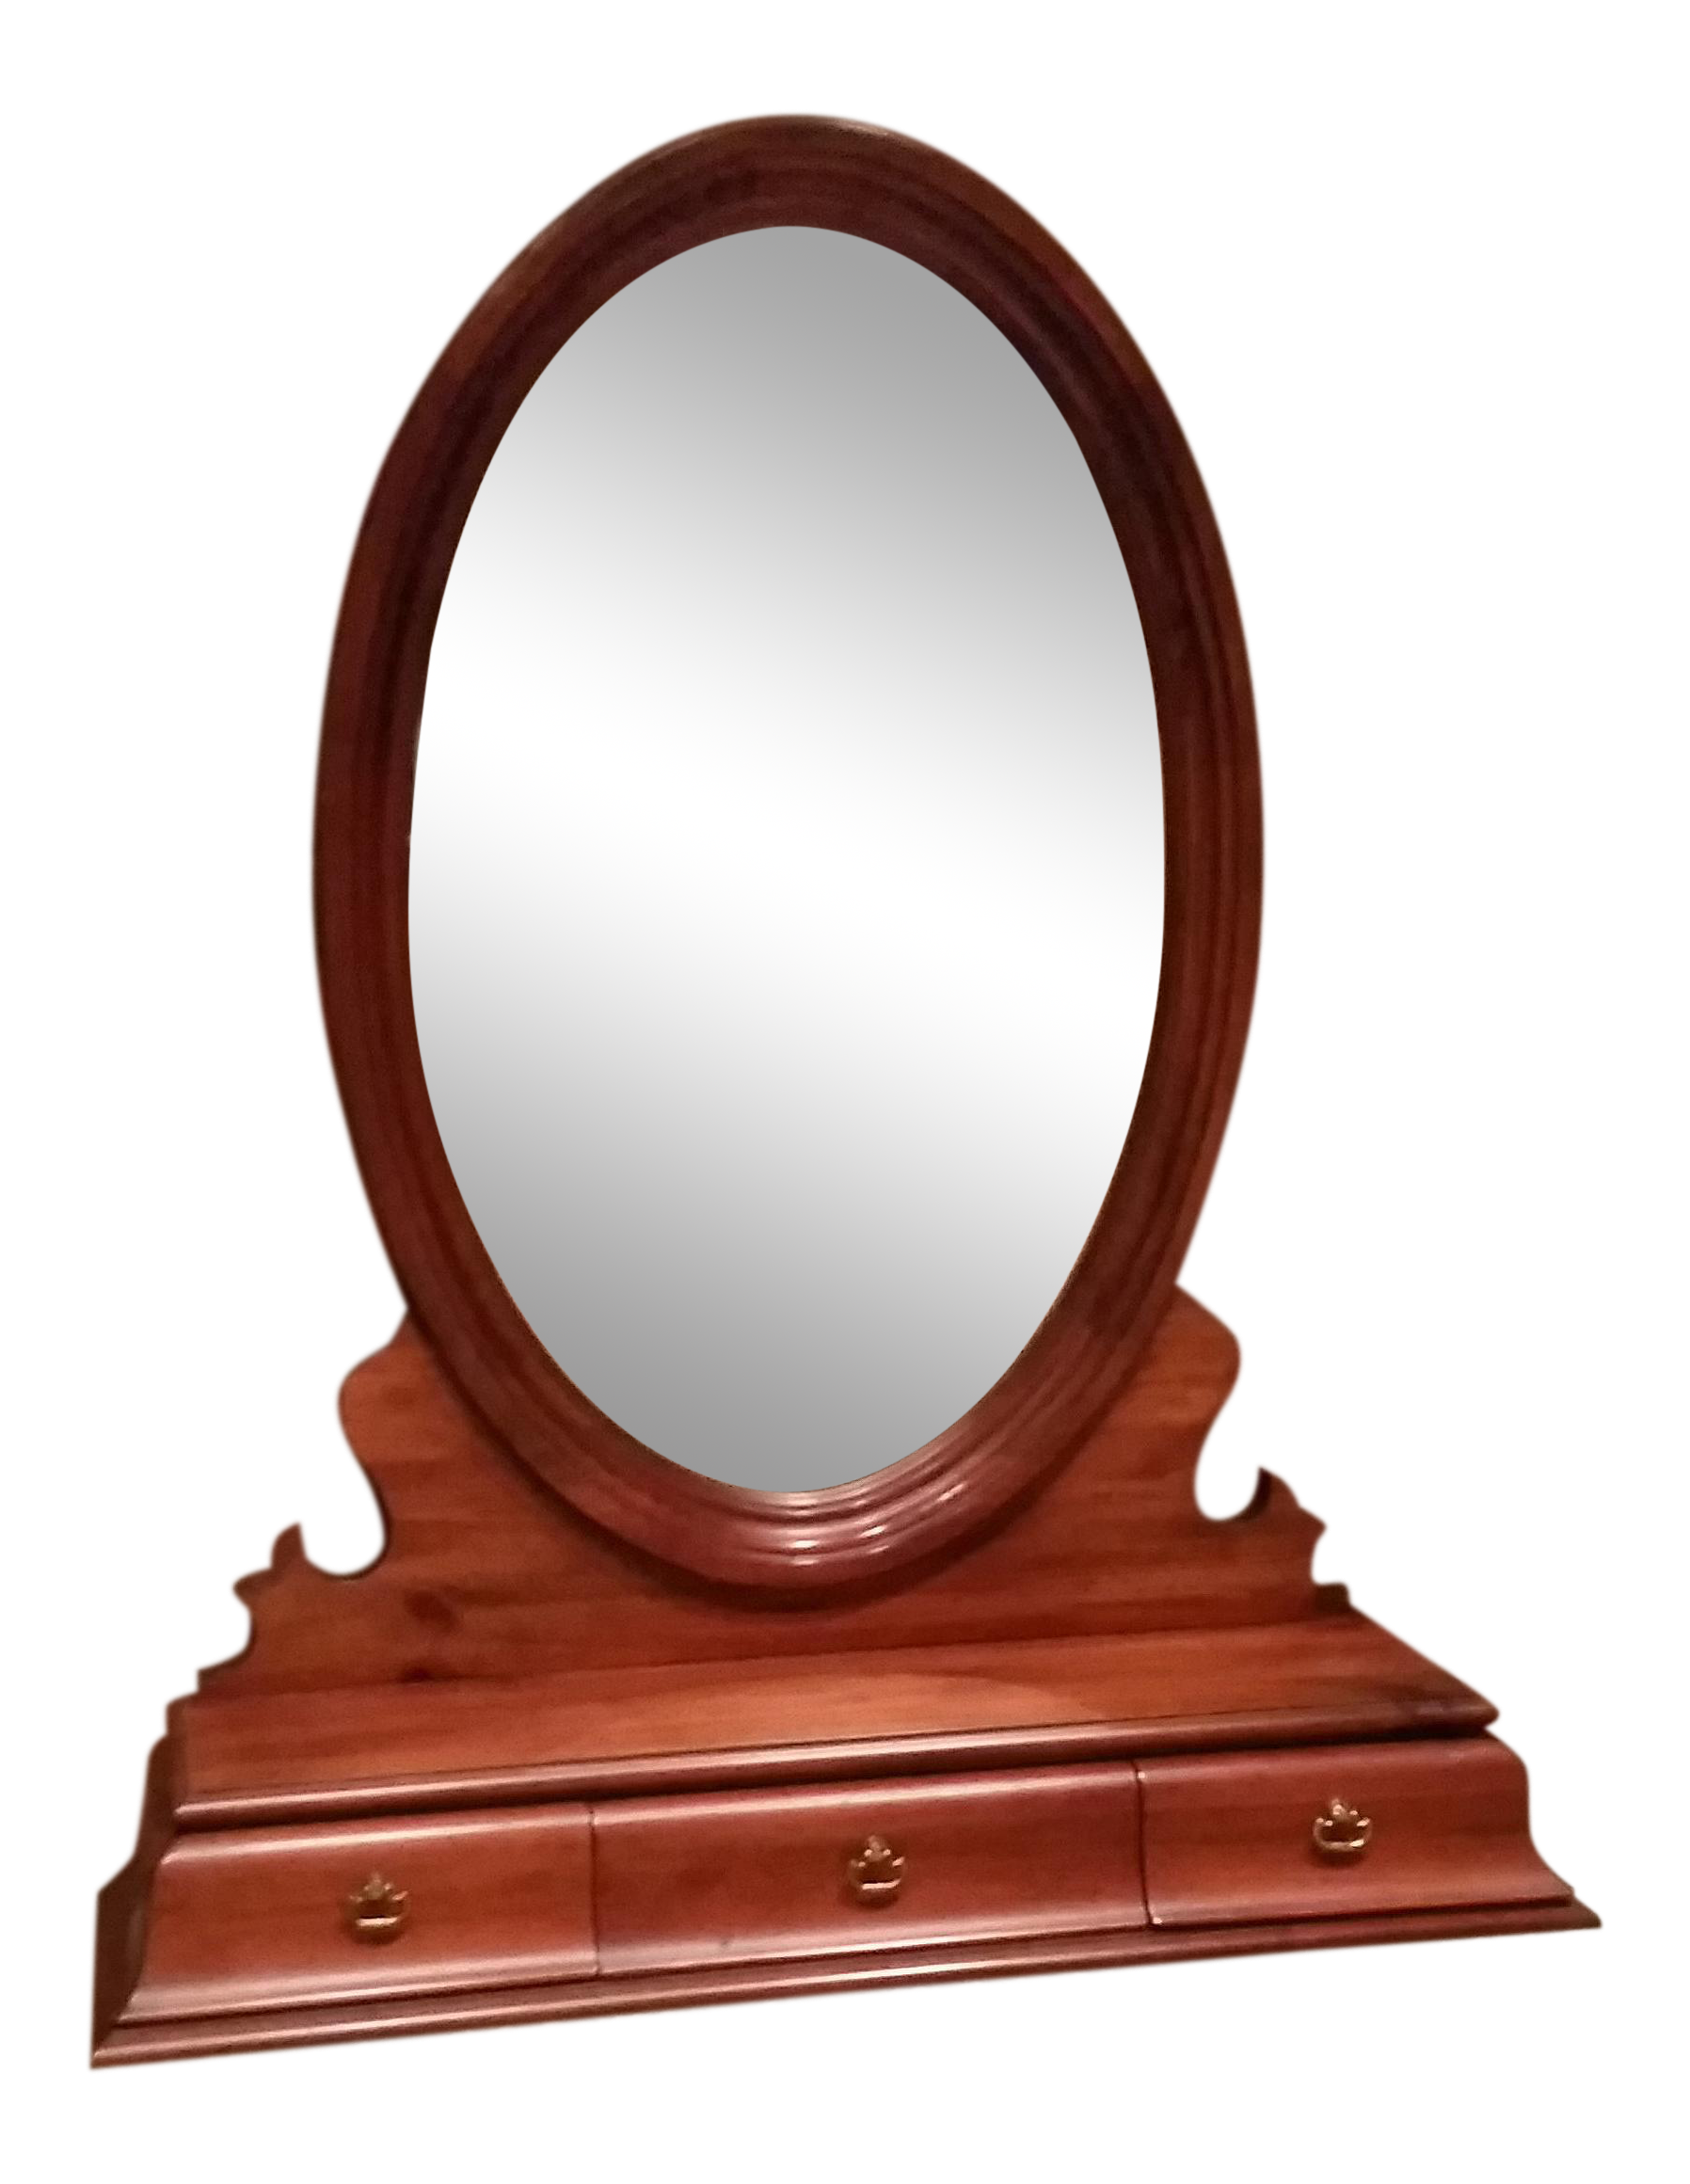 Oval Table Or Dresser Top Mirror With 3 Small Drawers   Get It Before It Is